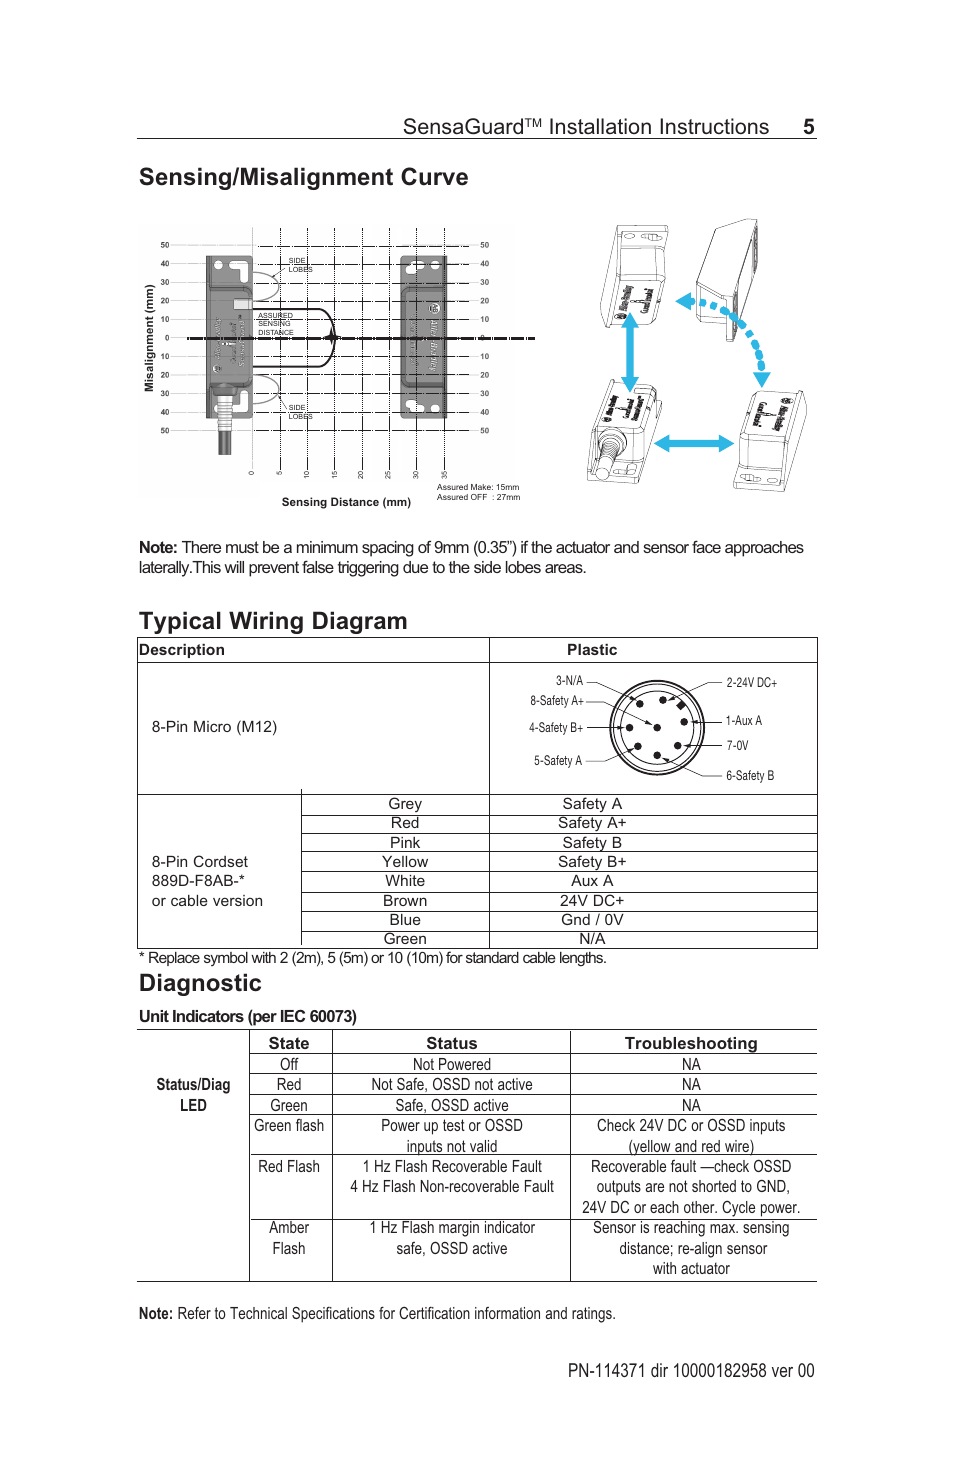 rockwell automation 440n sensaguard rectangular flat pack installation instructions page5 sensing misalignment curve typical wiring diagram, diagnostic sensaguard wiring diagram at edmiracle.co